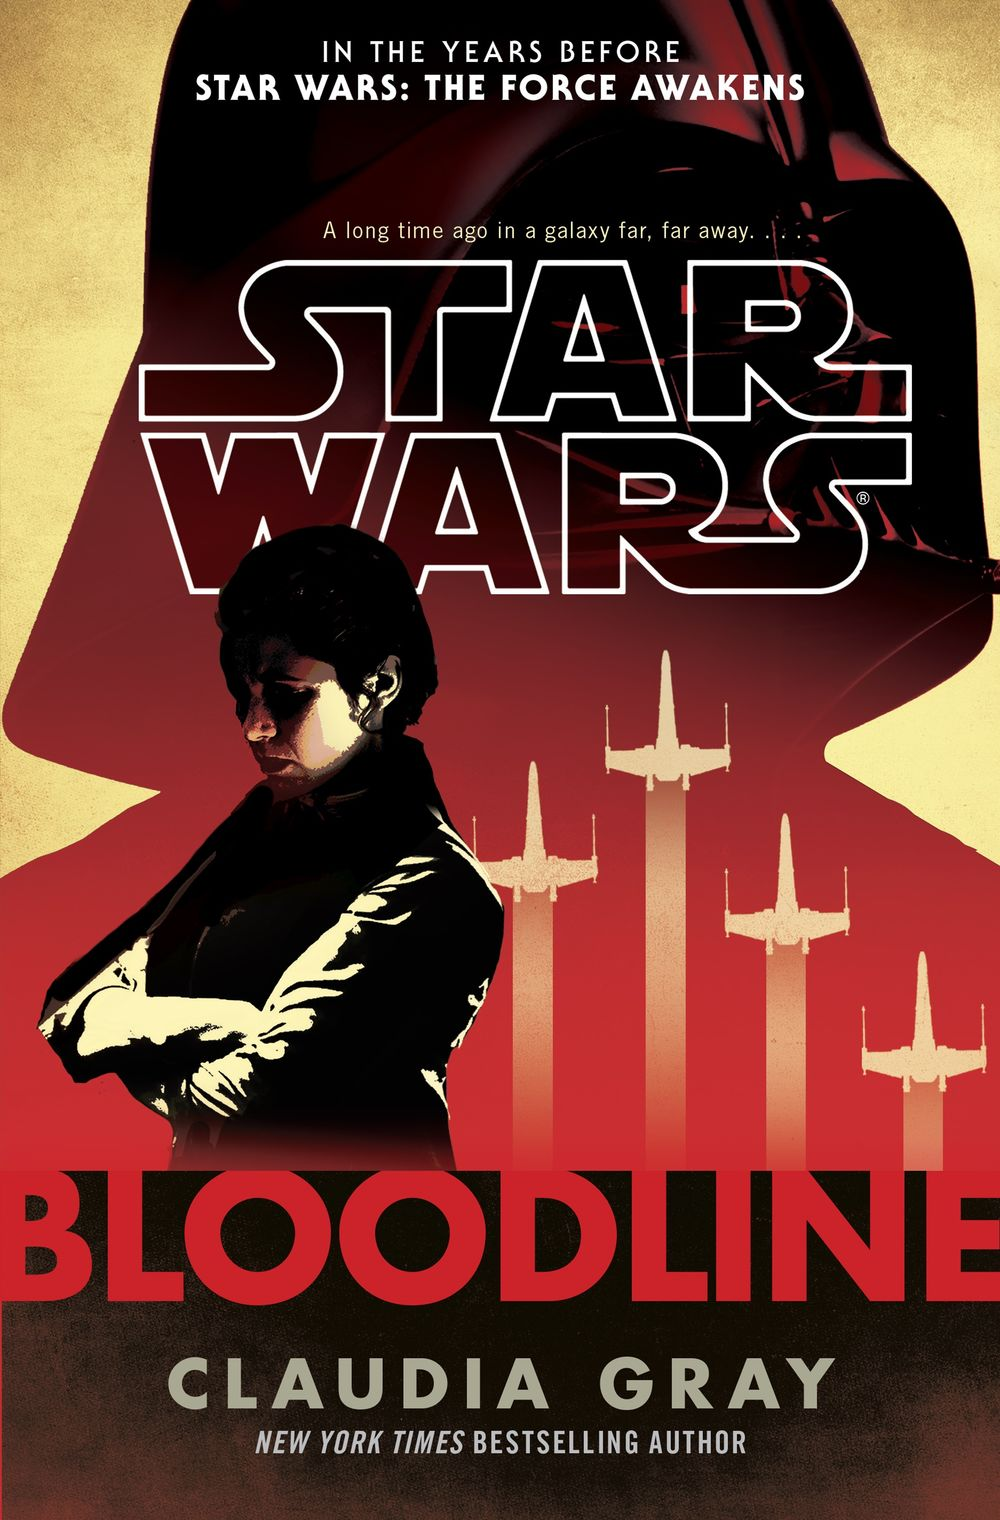 star wars bloodline cover.jpg